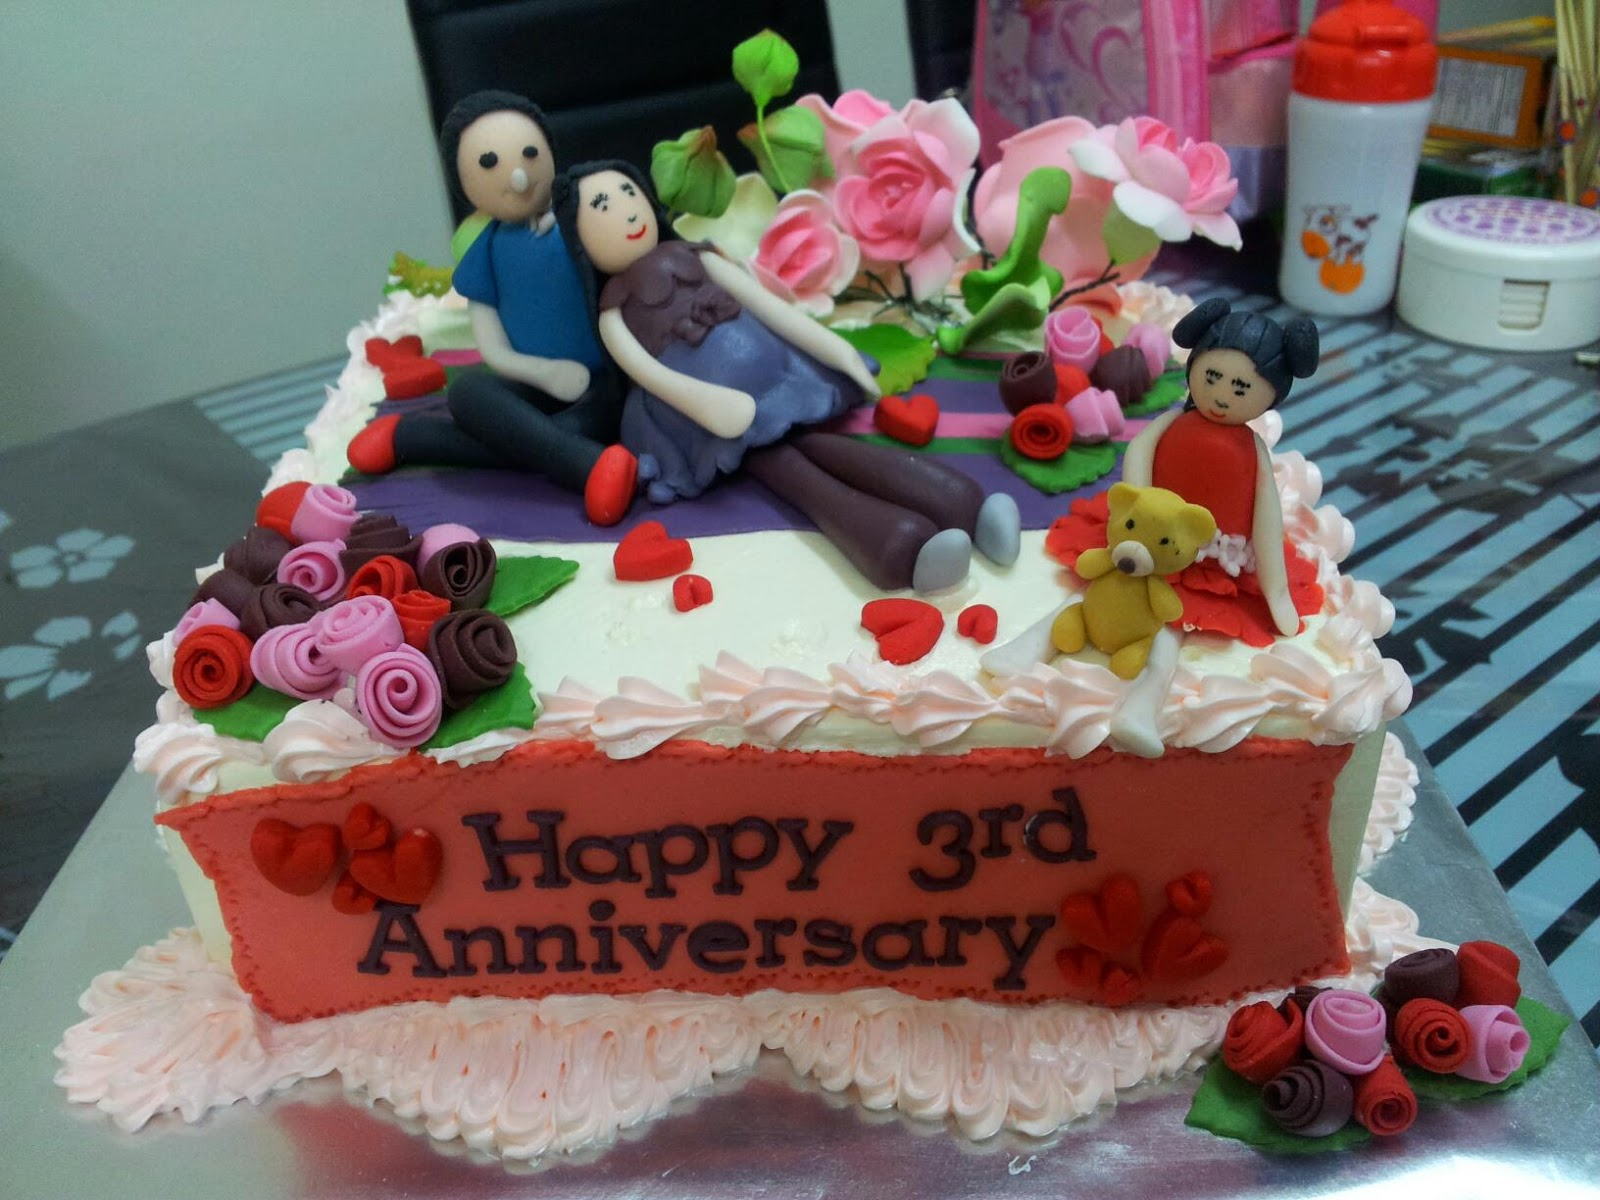 Cake Ideas For 40th Wedding Anniversary The Cake Boutique